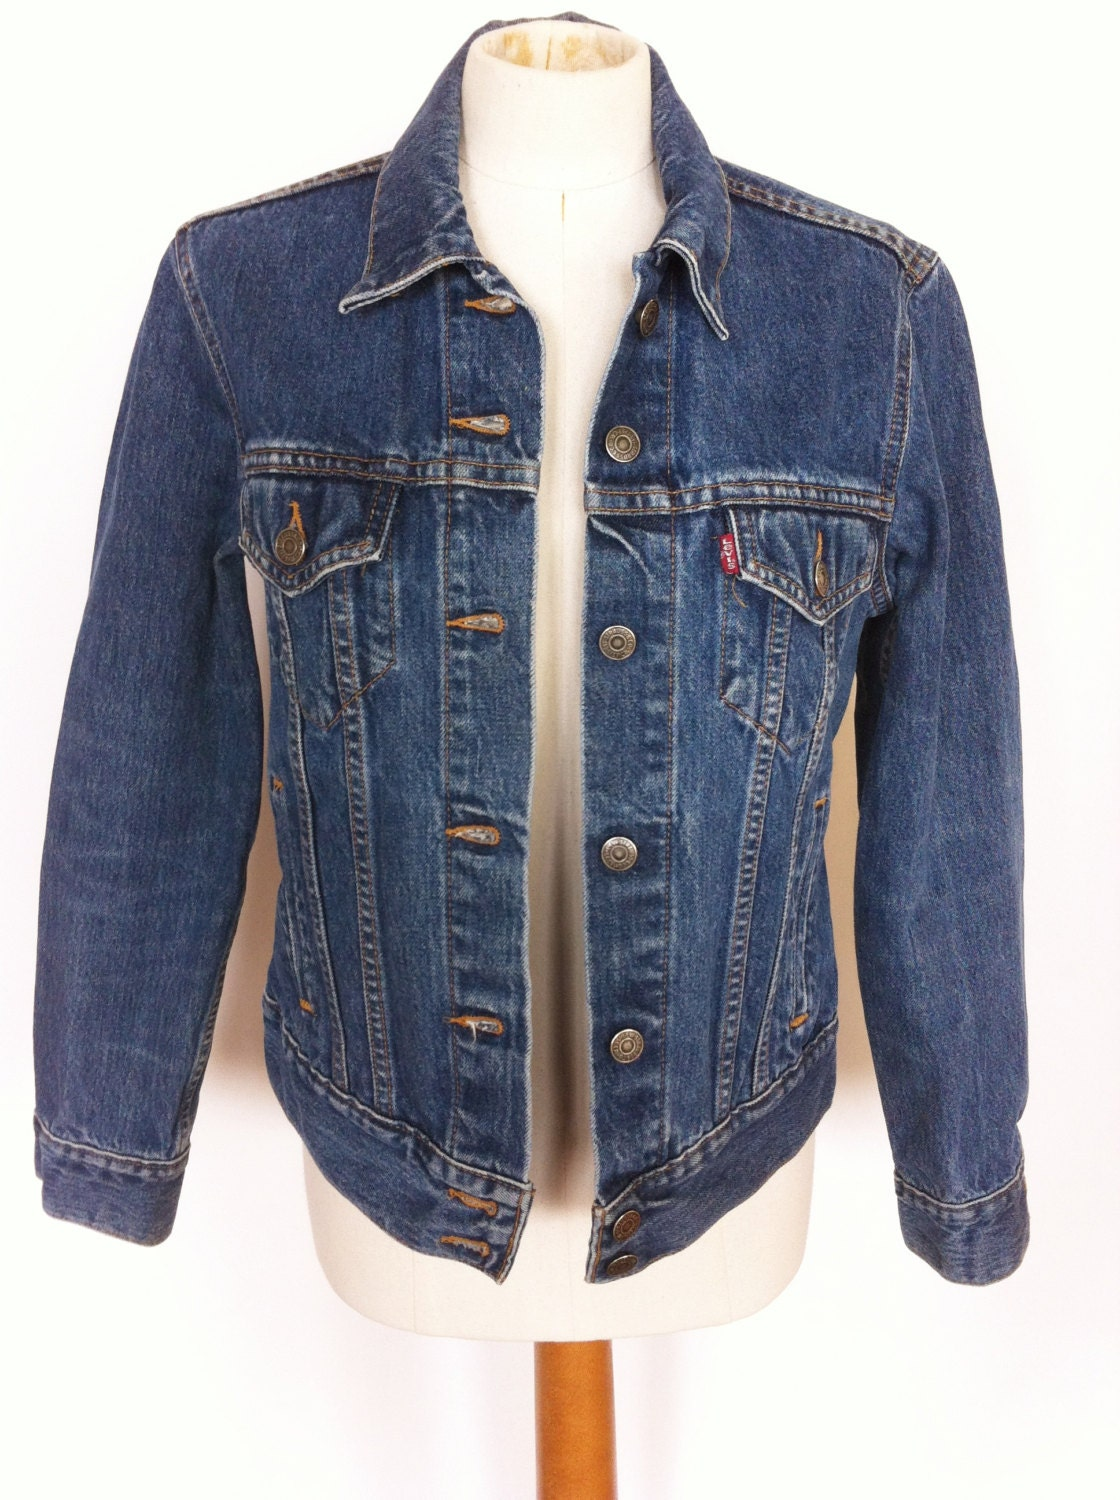 Vintage Women's Levi's Denim Jean Jacket Size Medium